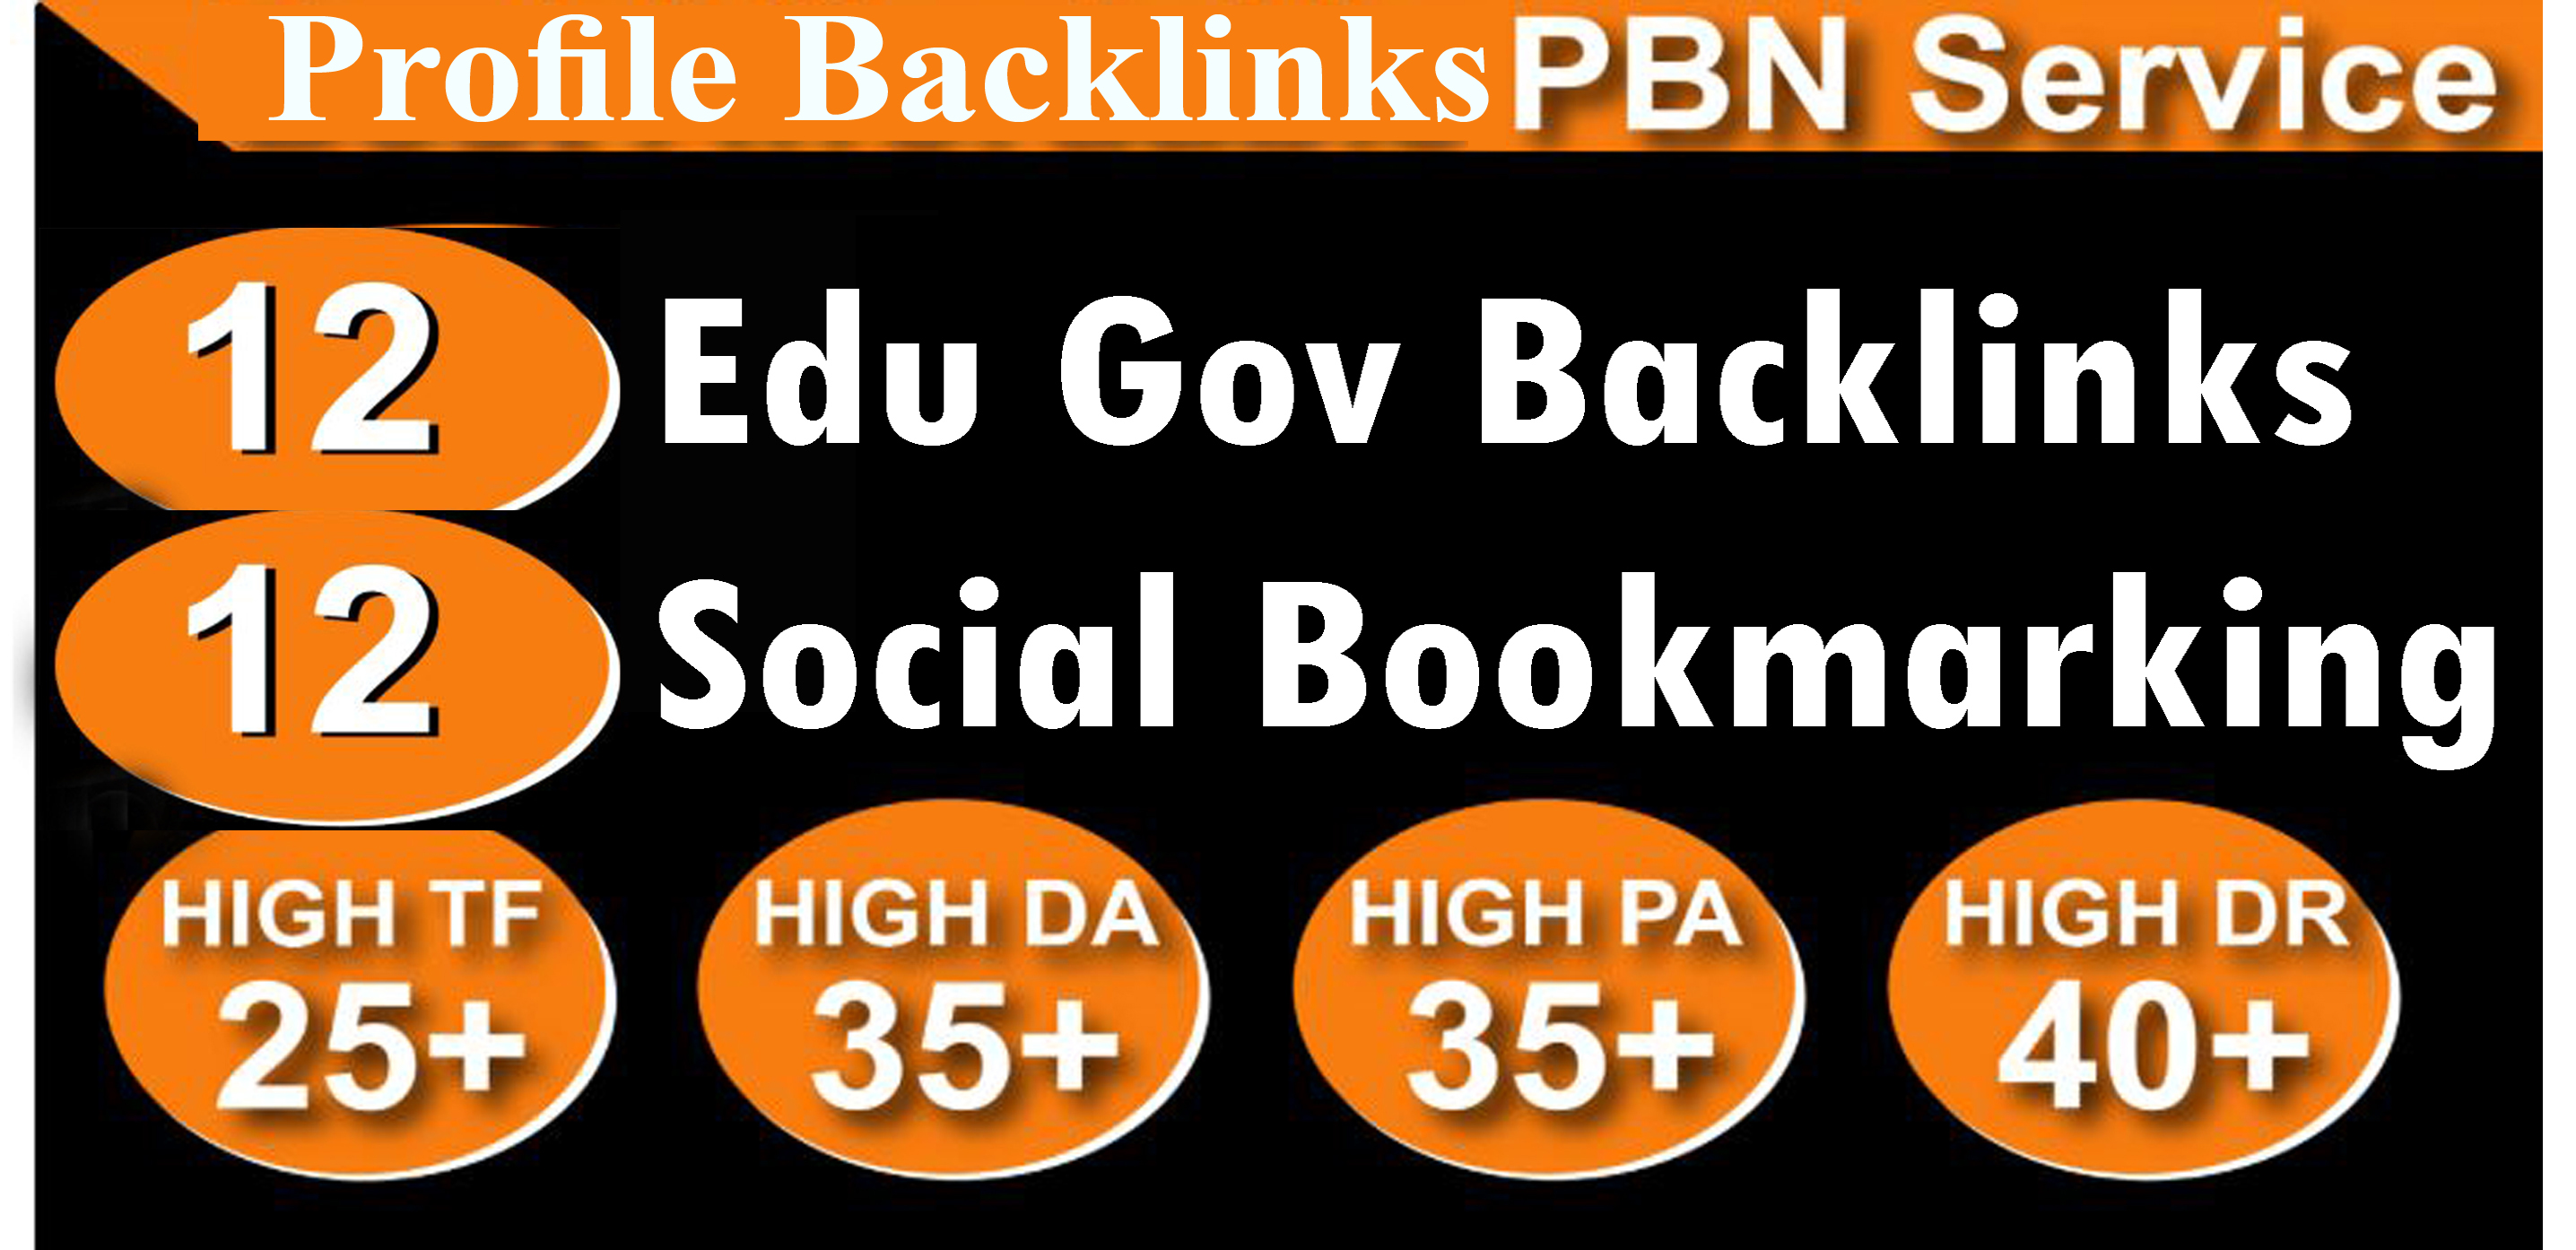 Create 12 Unique edu gov PBN Backlinks